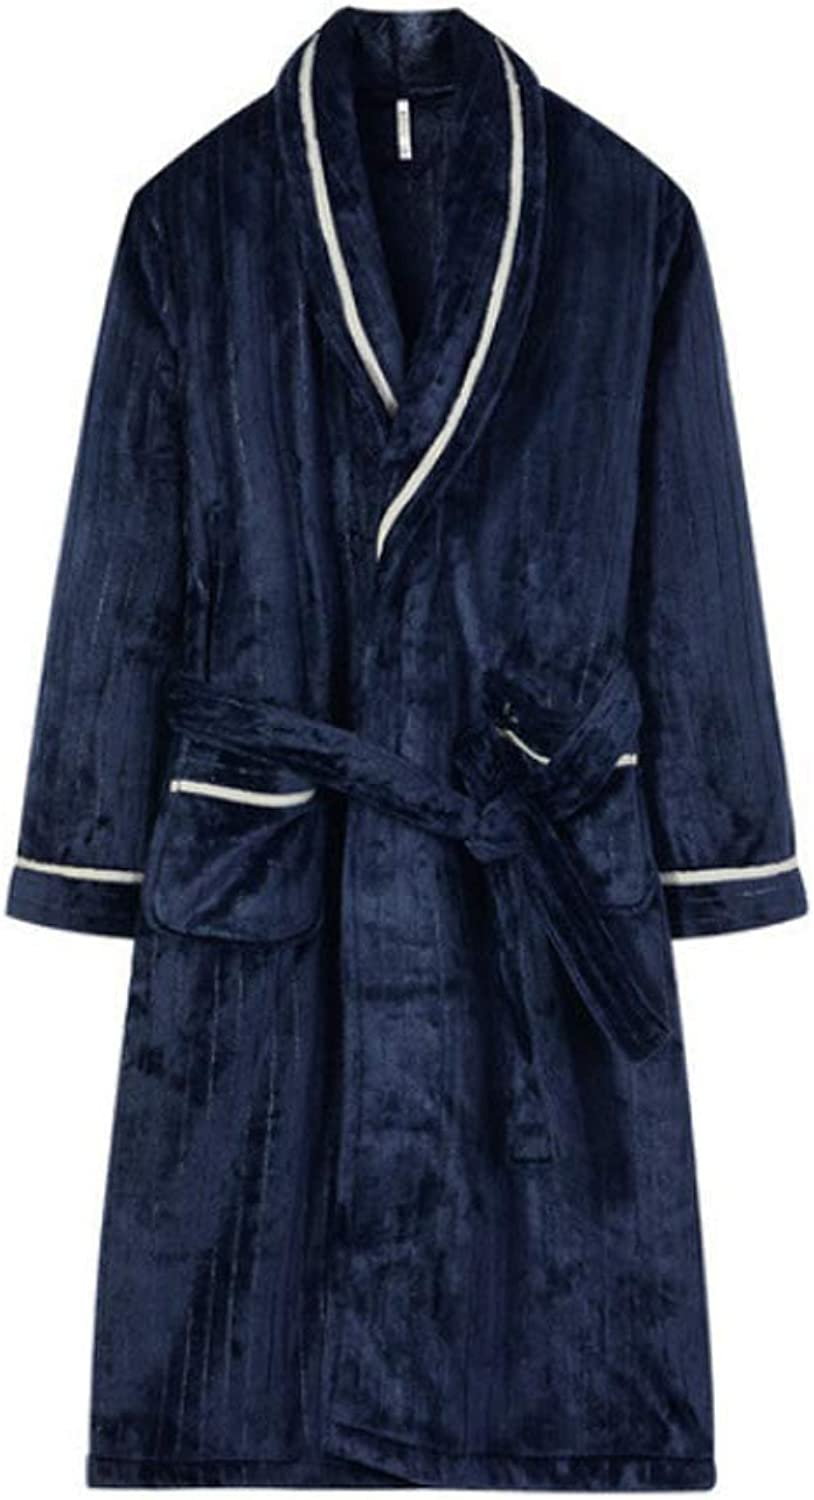 Bathrobe Ladies Flannel Long Bathrobes Warm and Comfortable Couple Style Pajamas Shawl (color   Navy bluee Men, Size   165 88A)